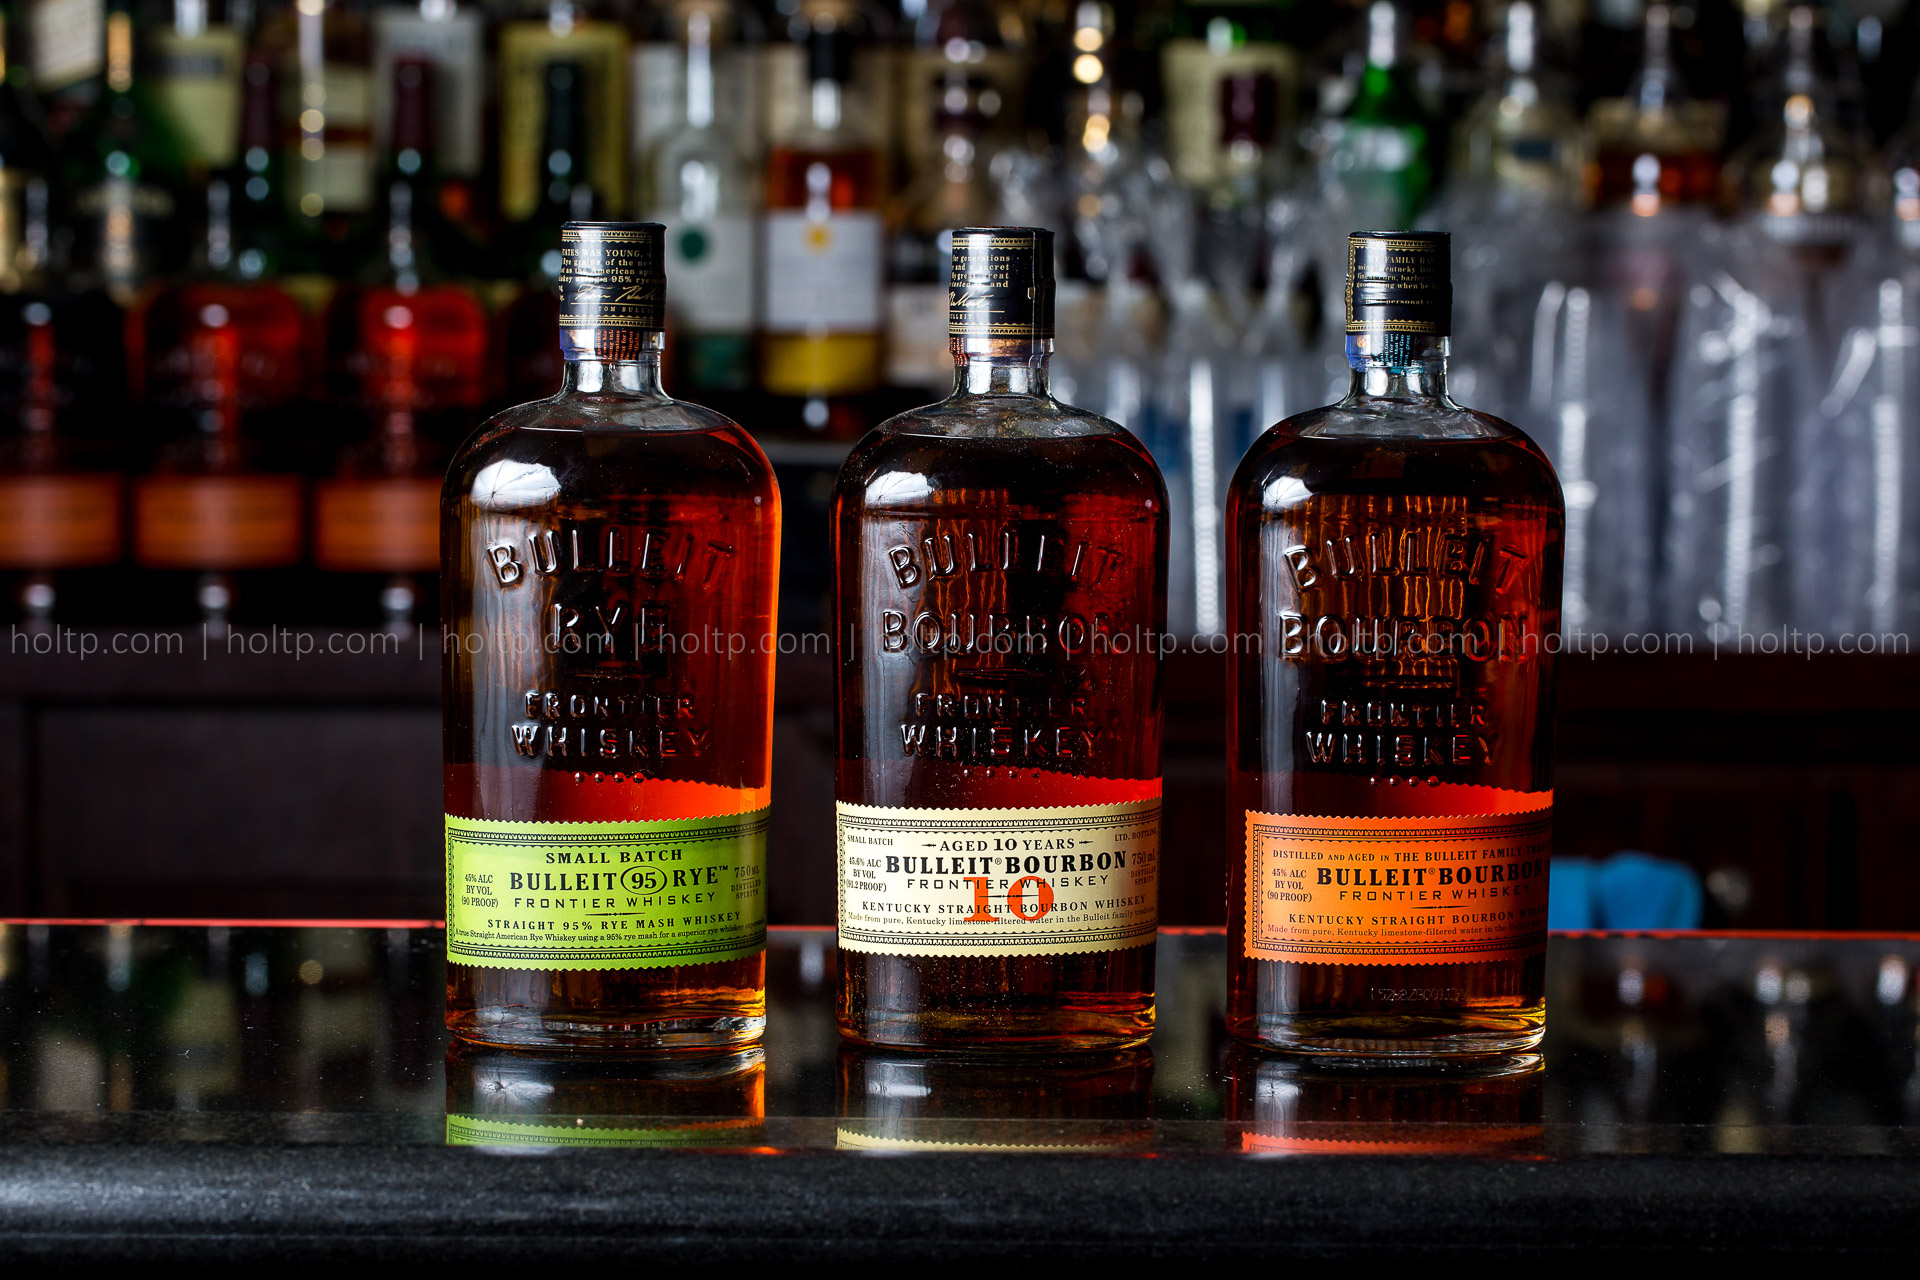 Bulleit Whiskey | Product Photography